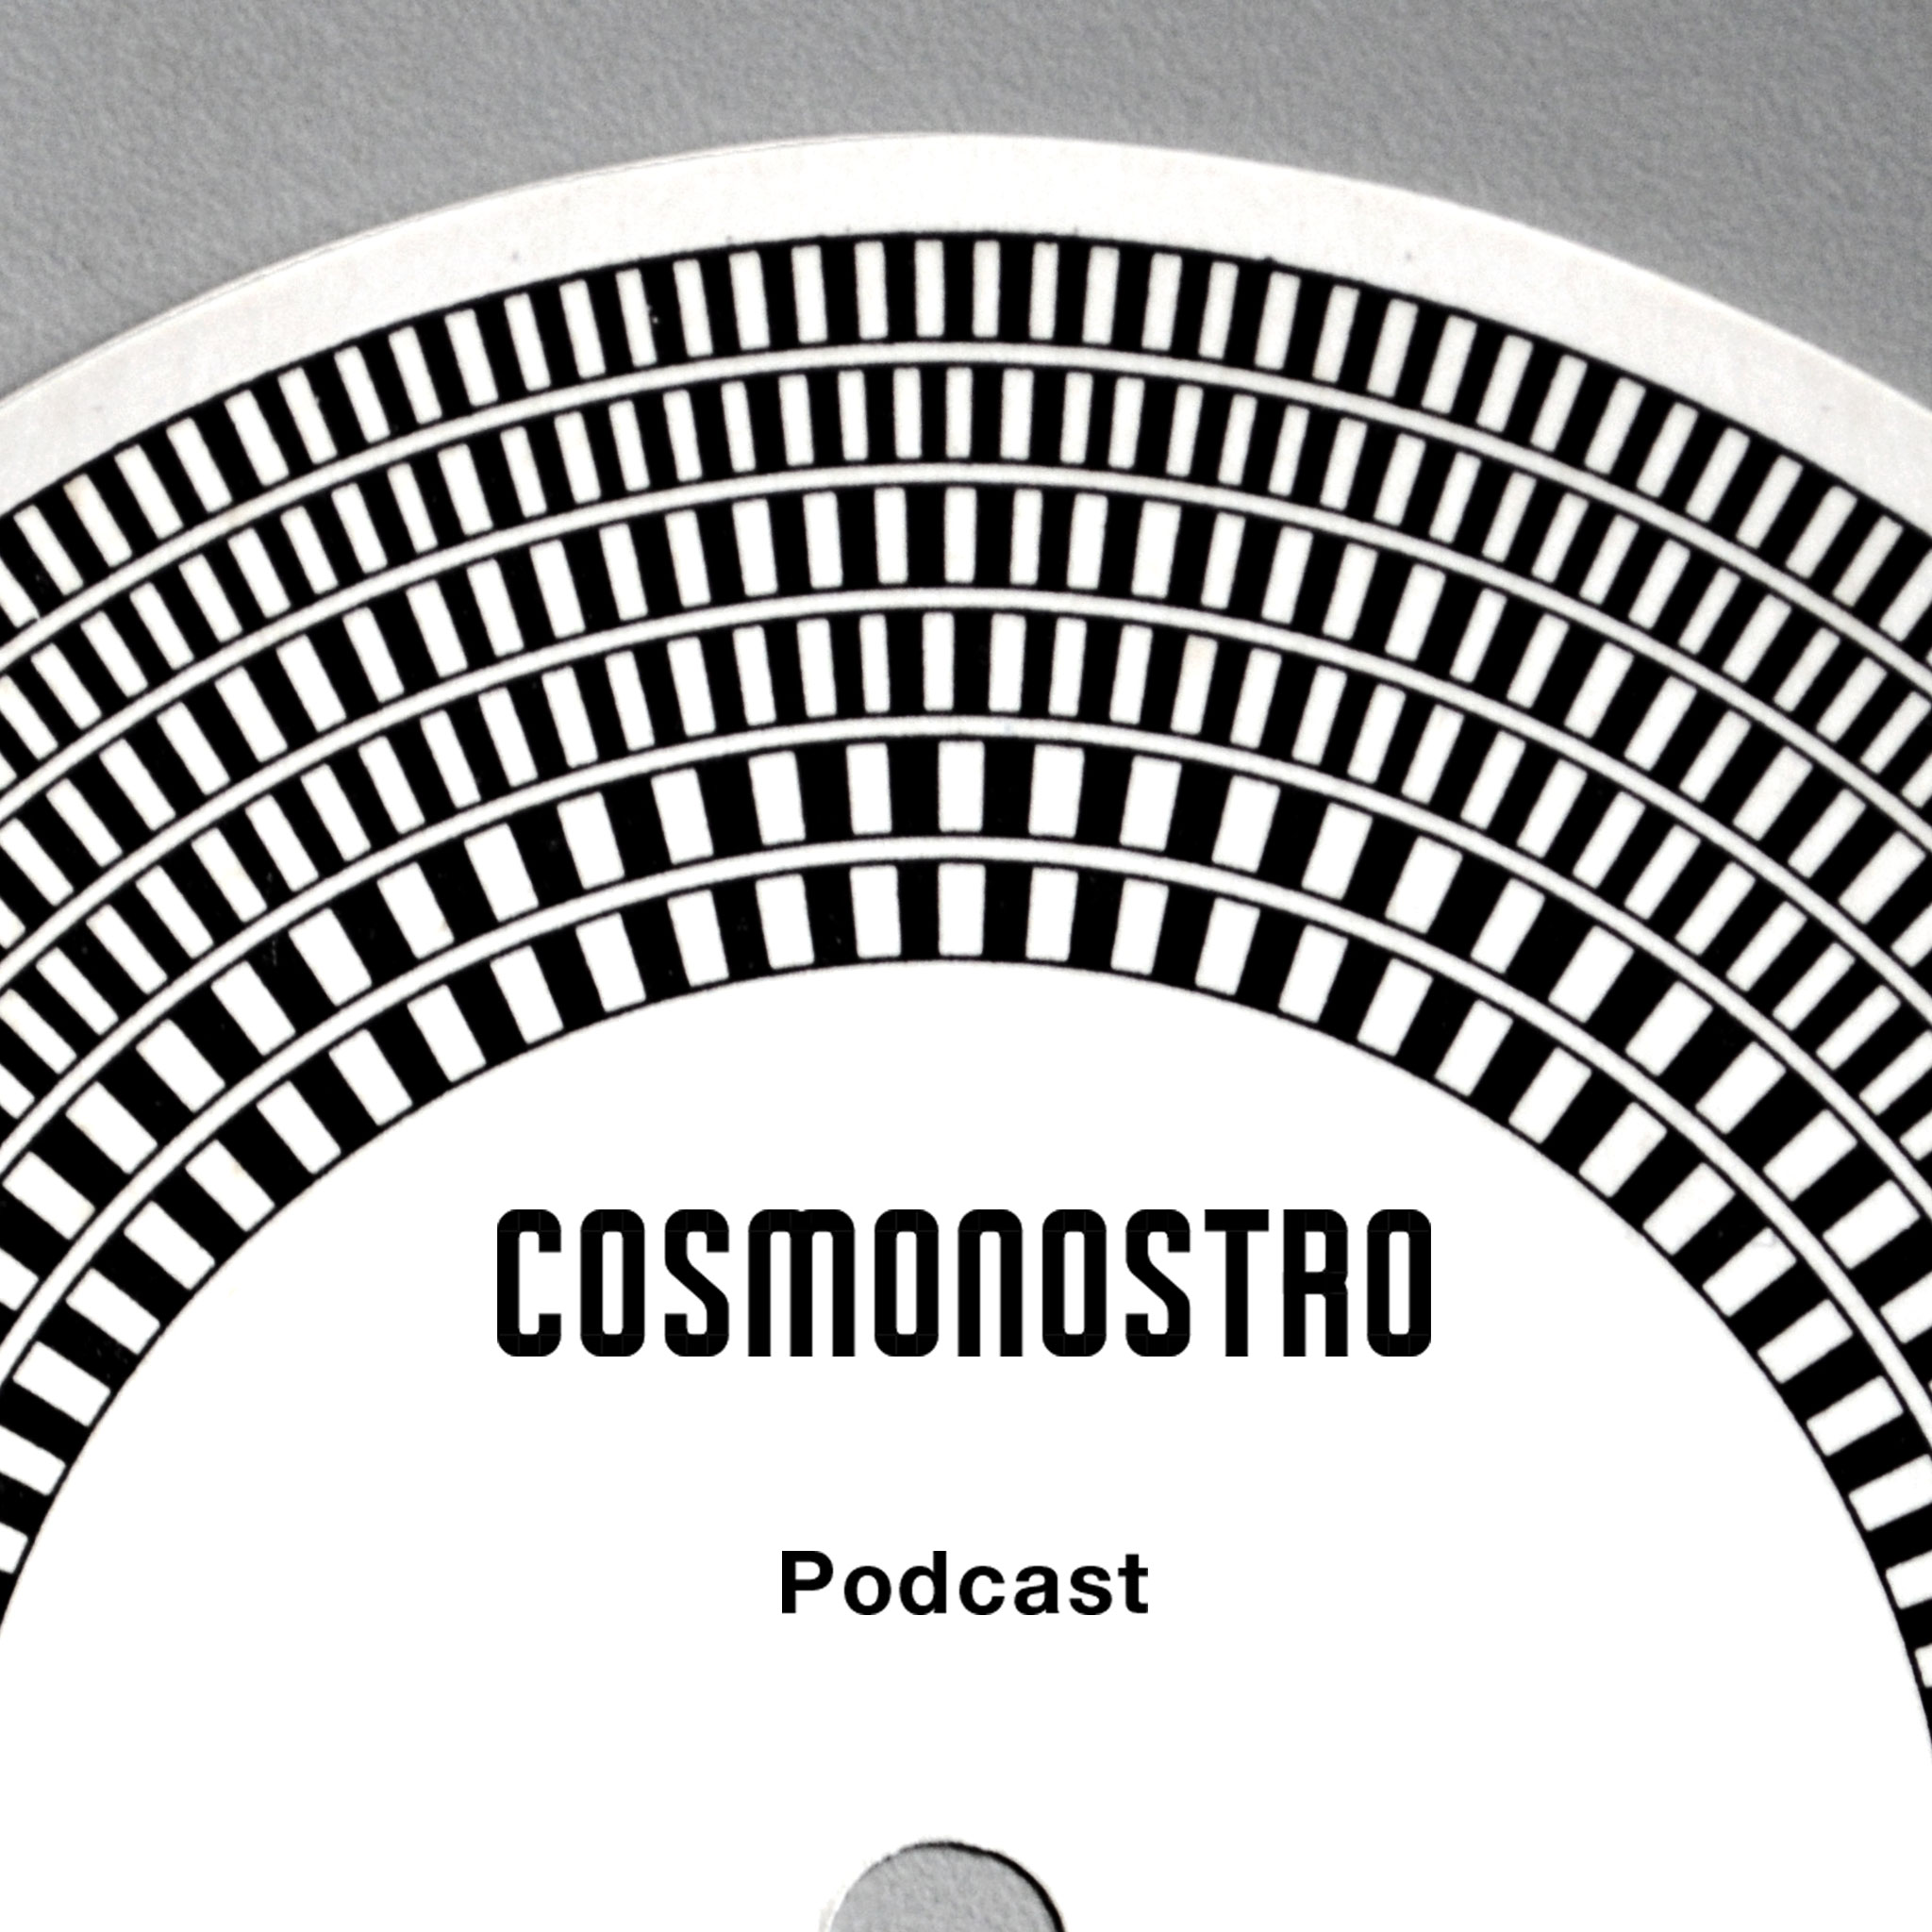 Cosmonostro Podcast